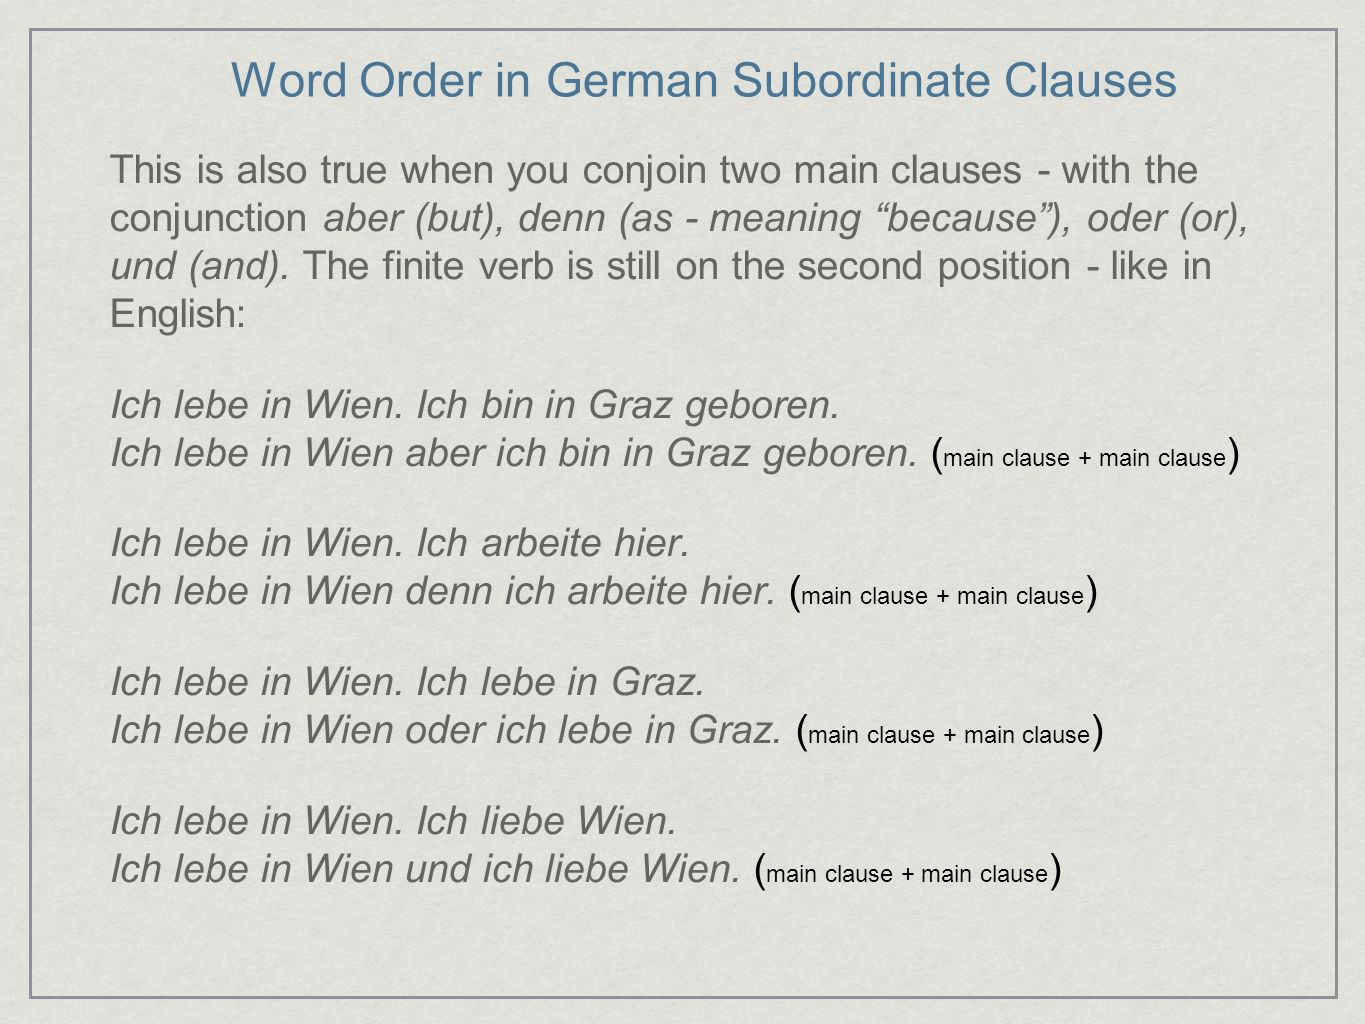 Word Order in German Subordinate Clauses